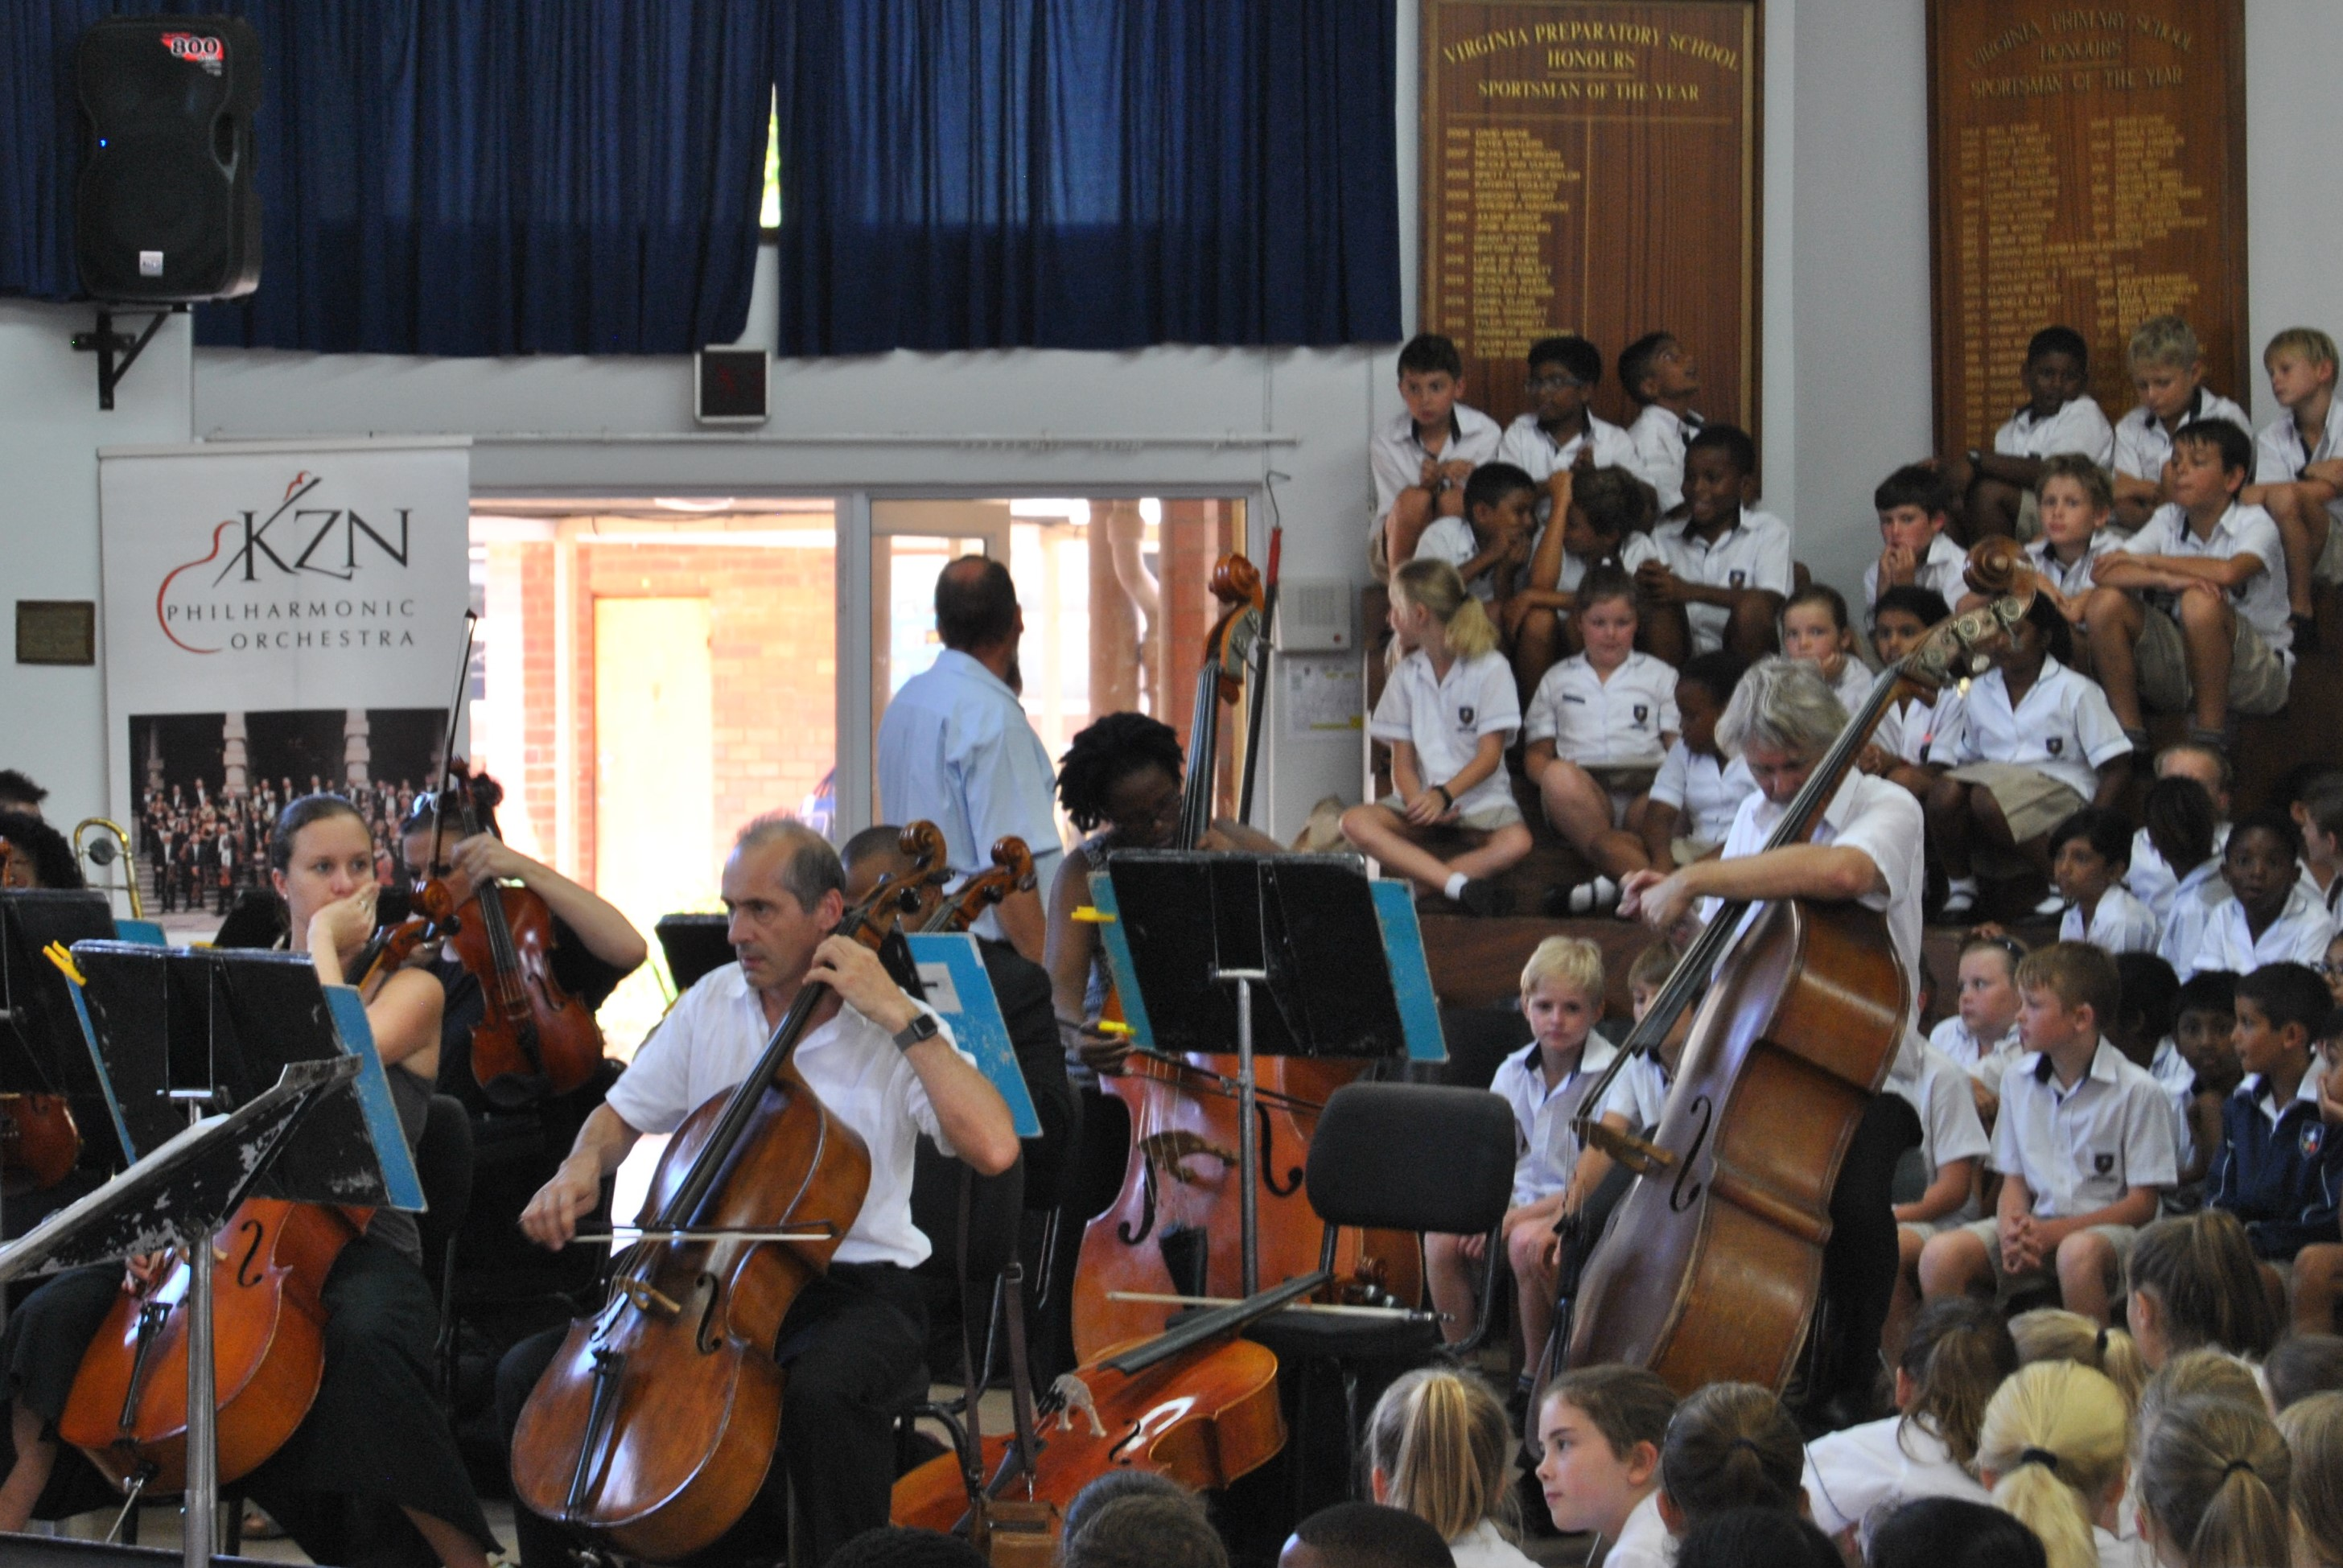 KZN Philharmonic Orchestra | Education and Development Gallery March